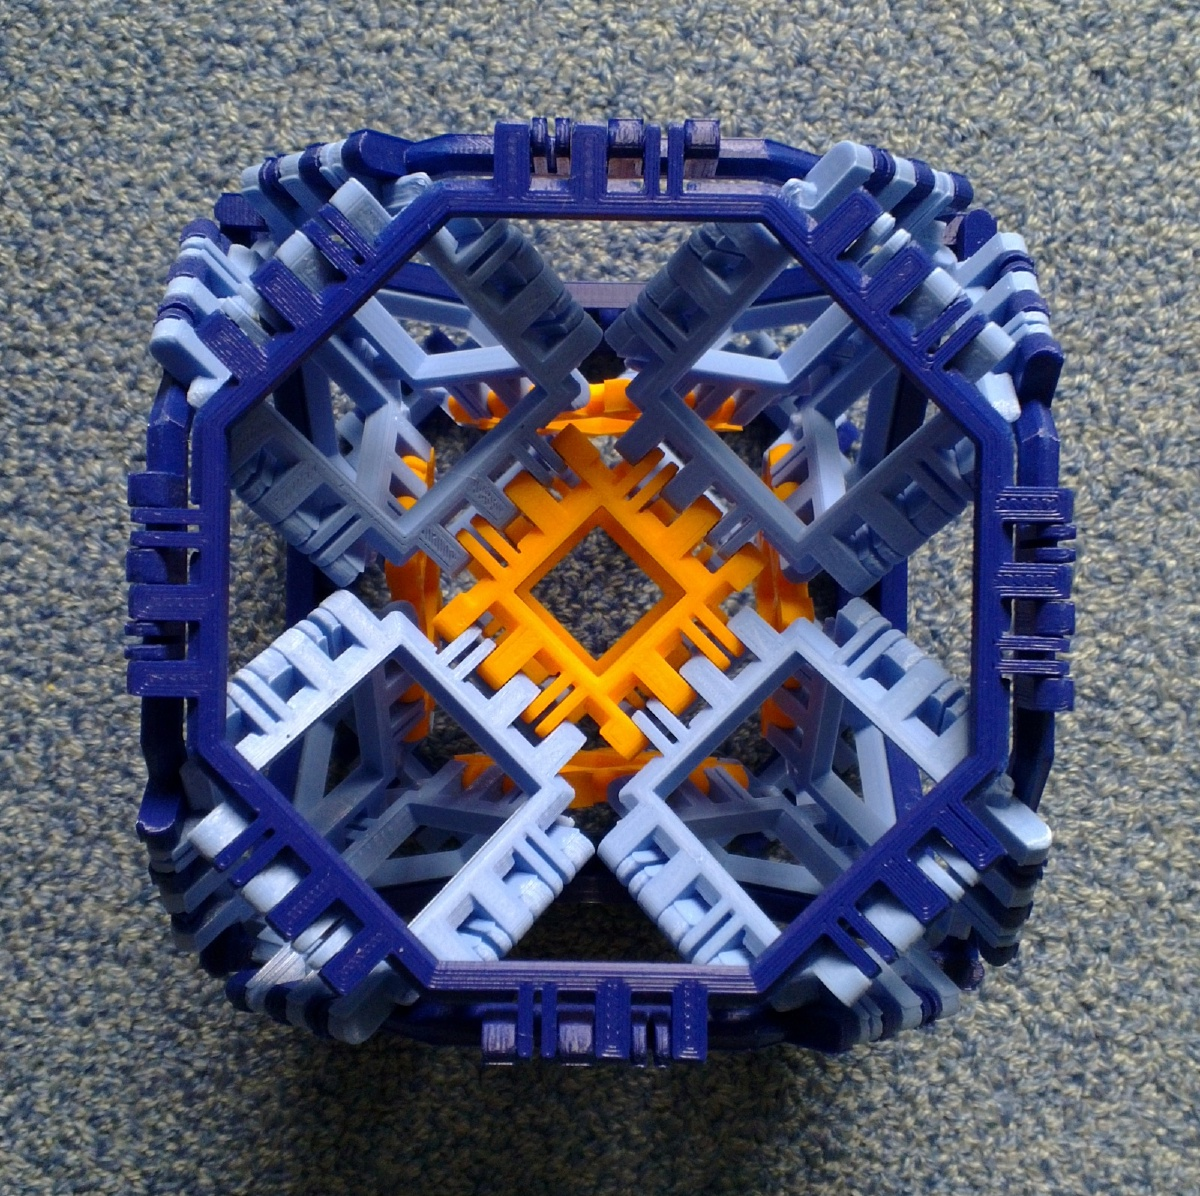 Toroidal truncated cube assembly finished